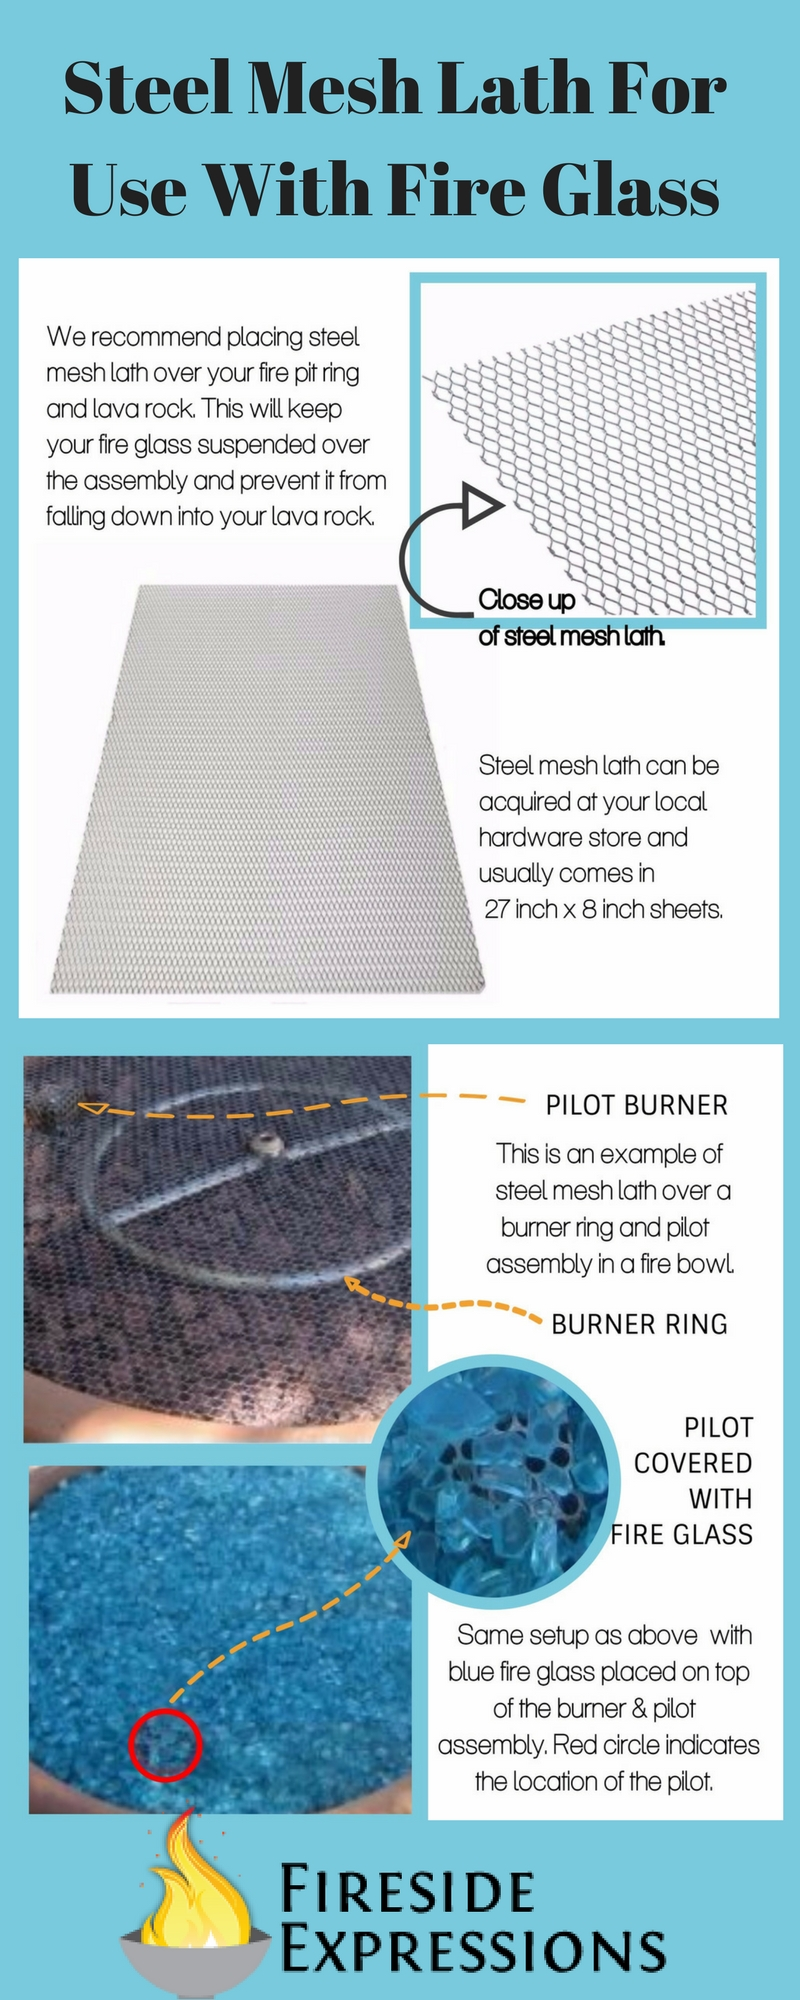 Steel Mesh Lath For Use With Fire Glass